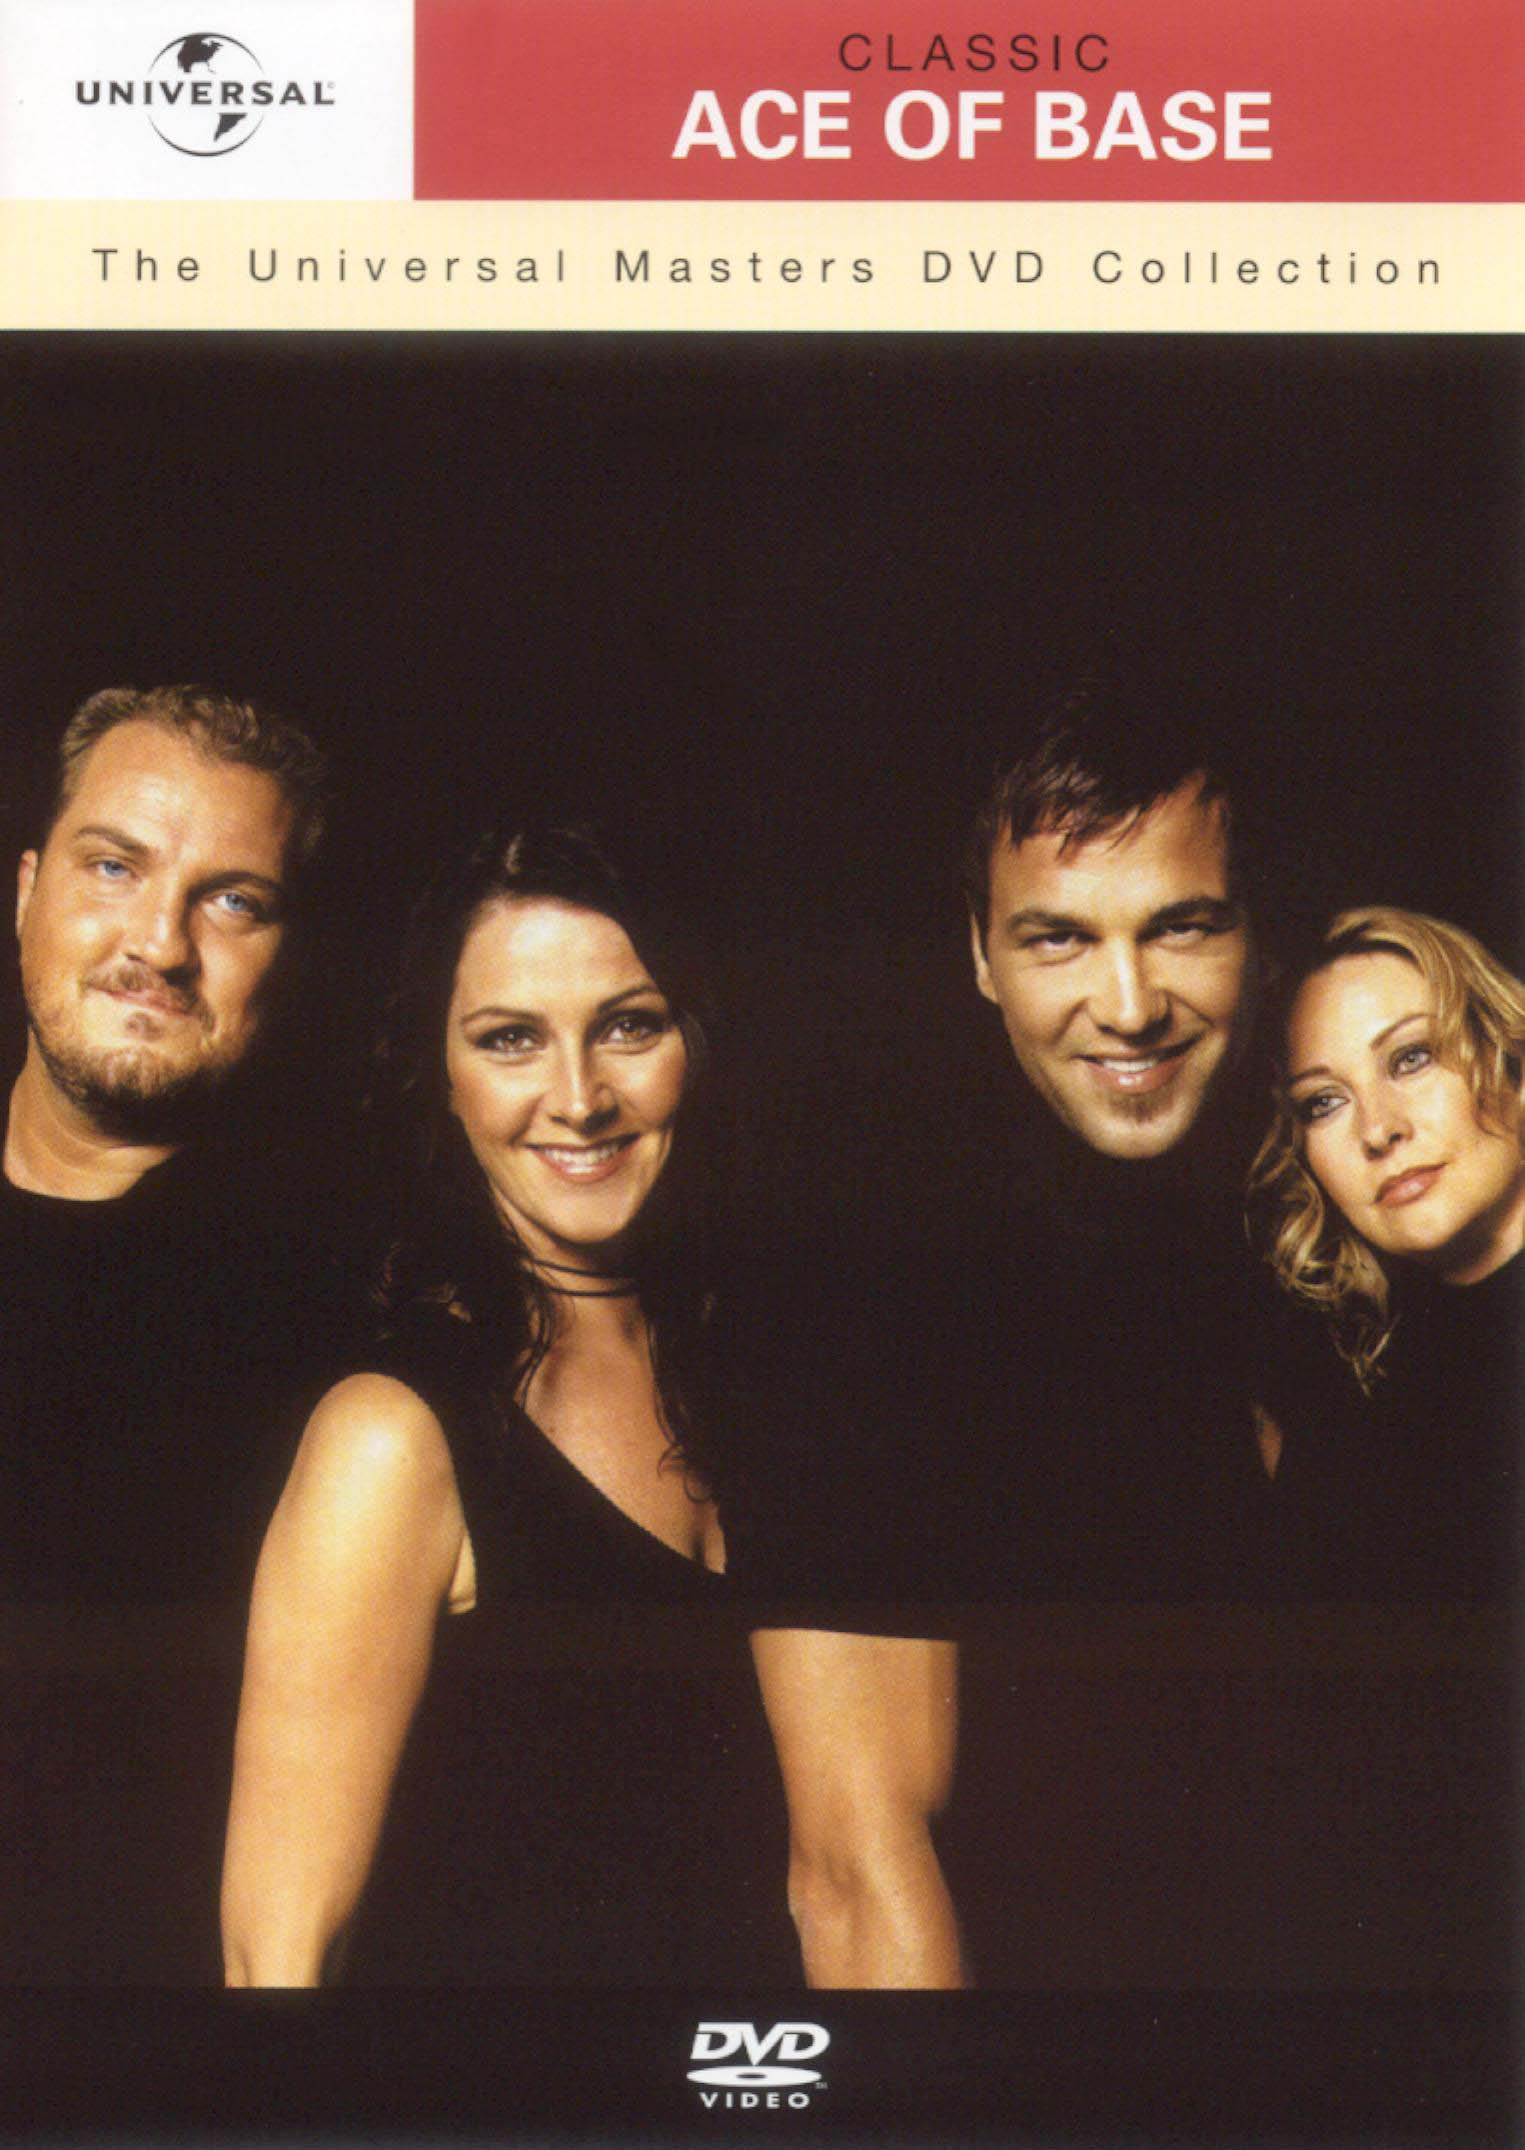 Universal Masters Collection: Ace of Base